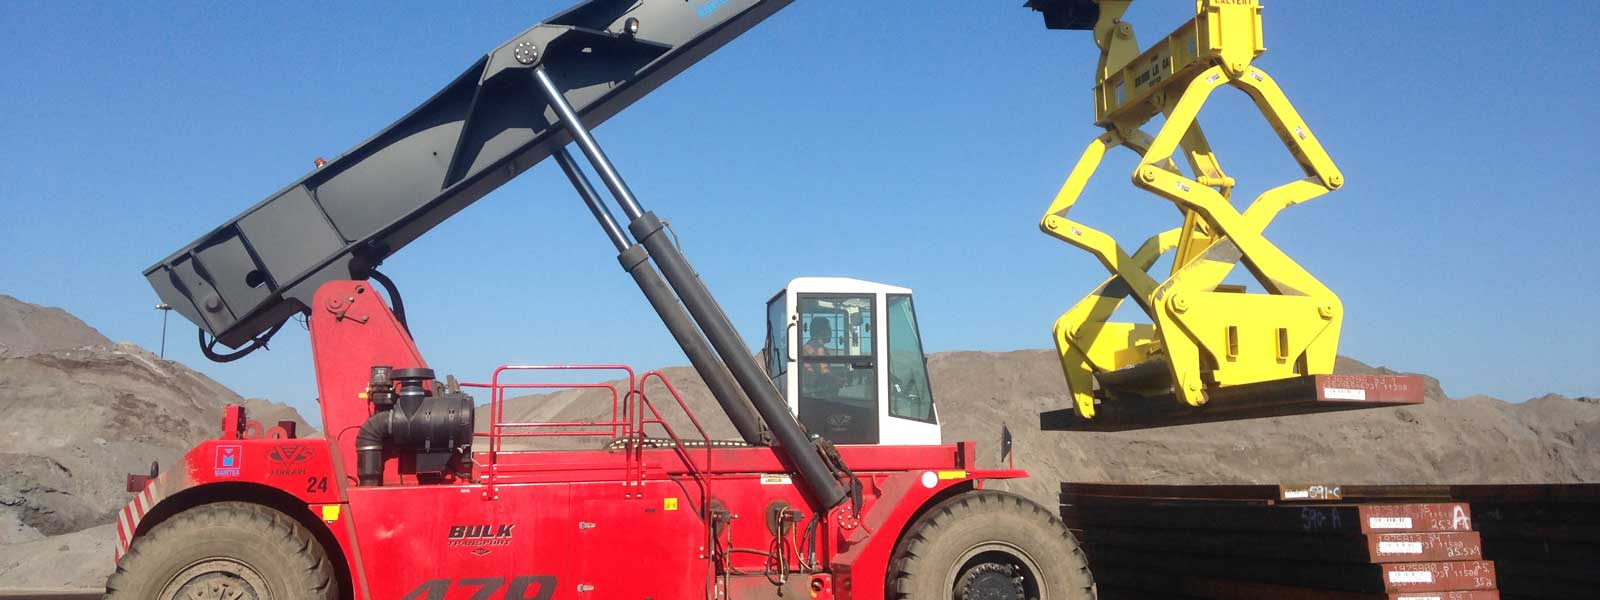 Reach Stacker With Tong At Job Site